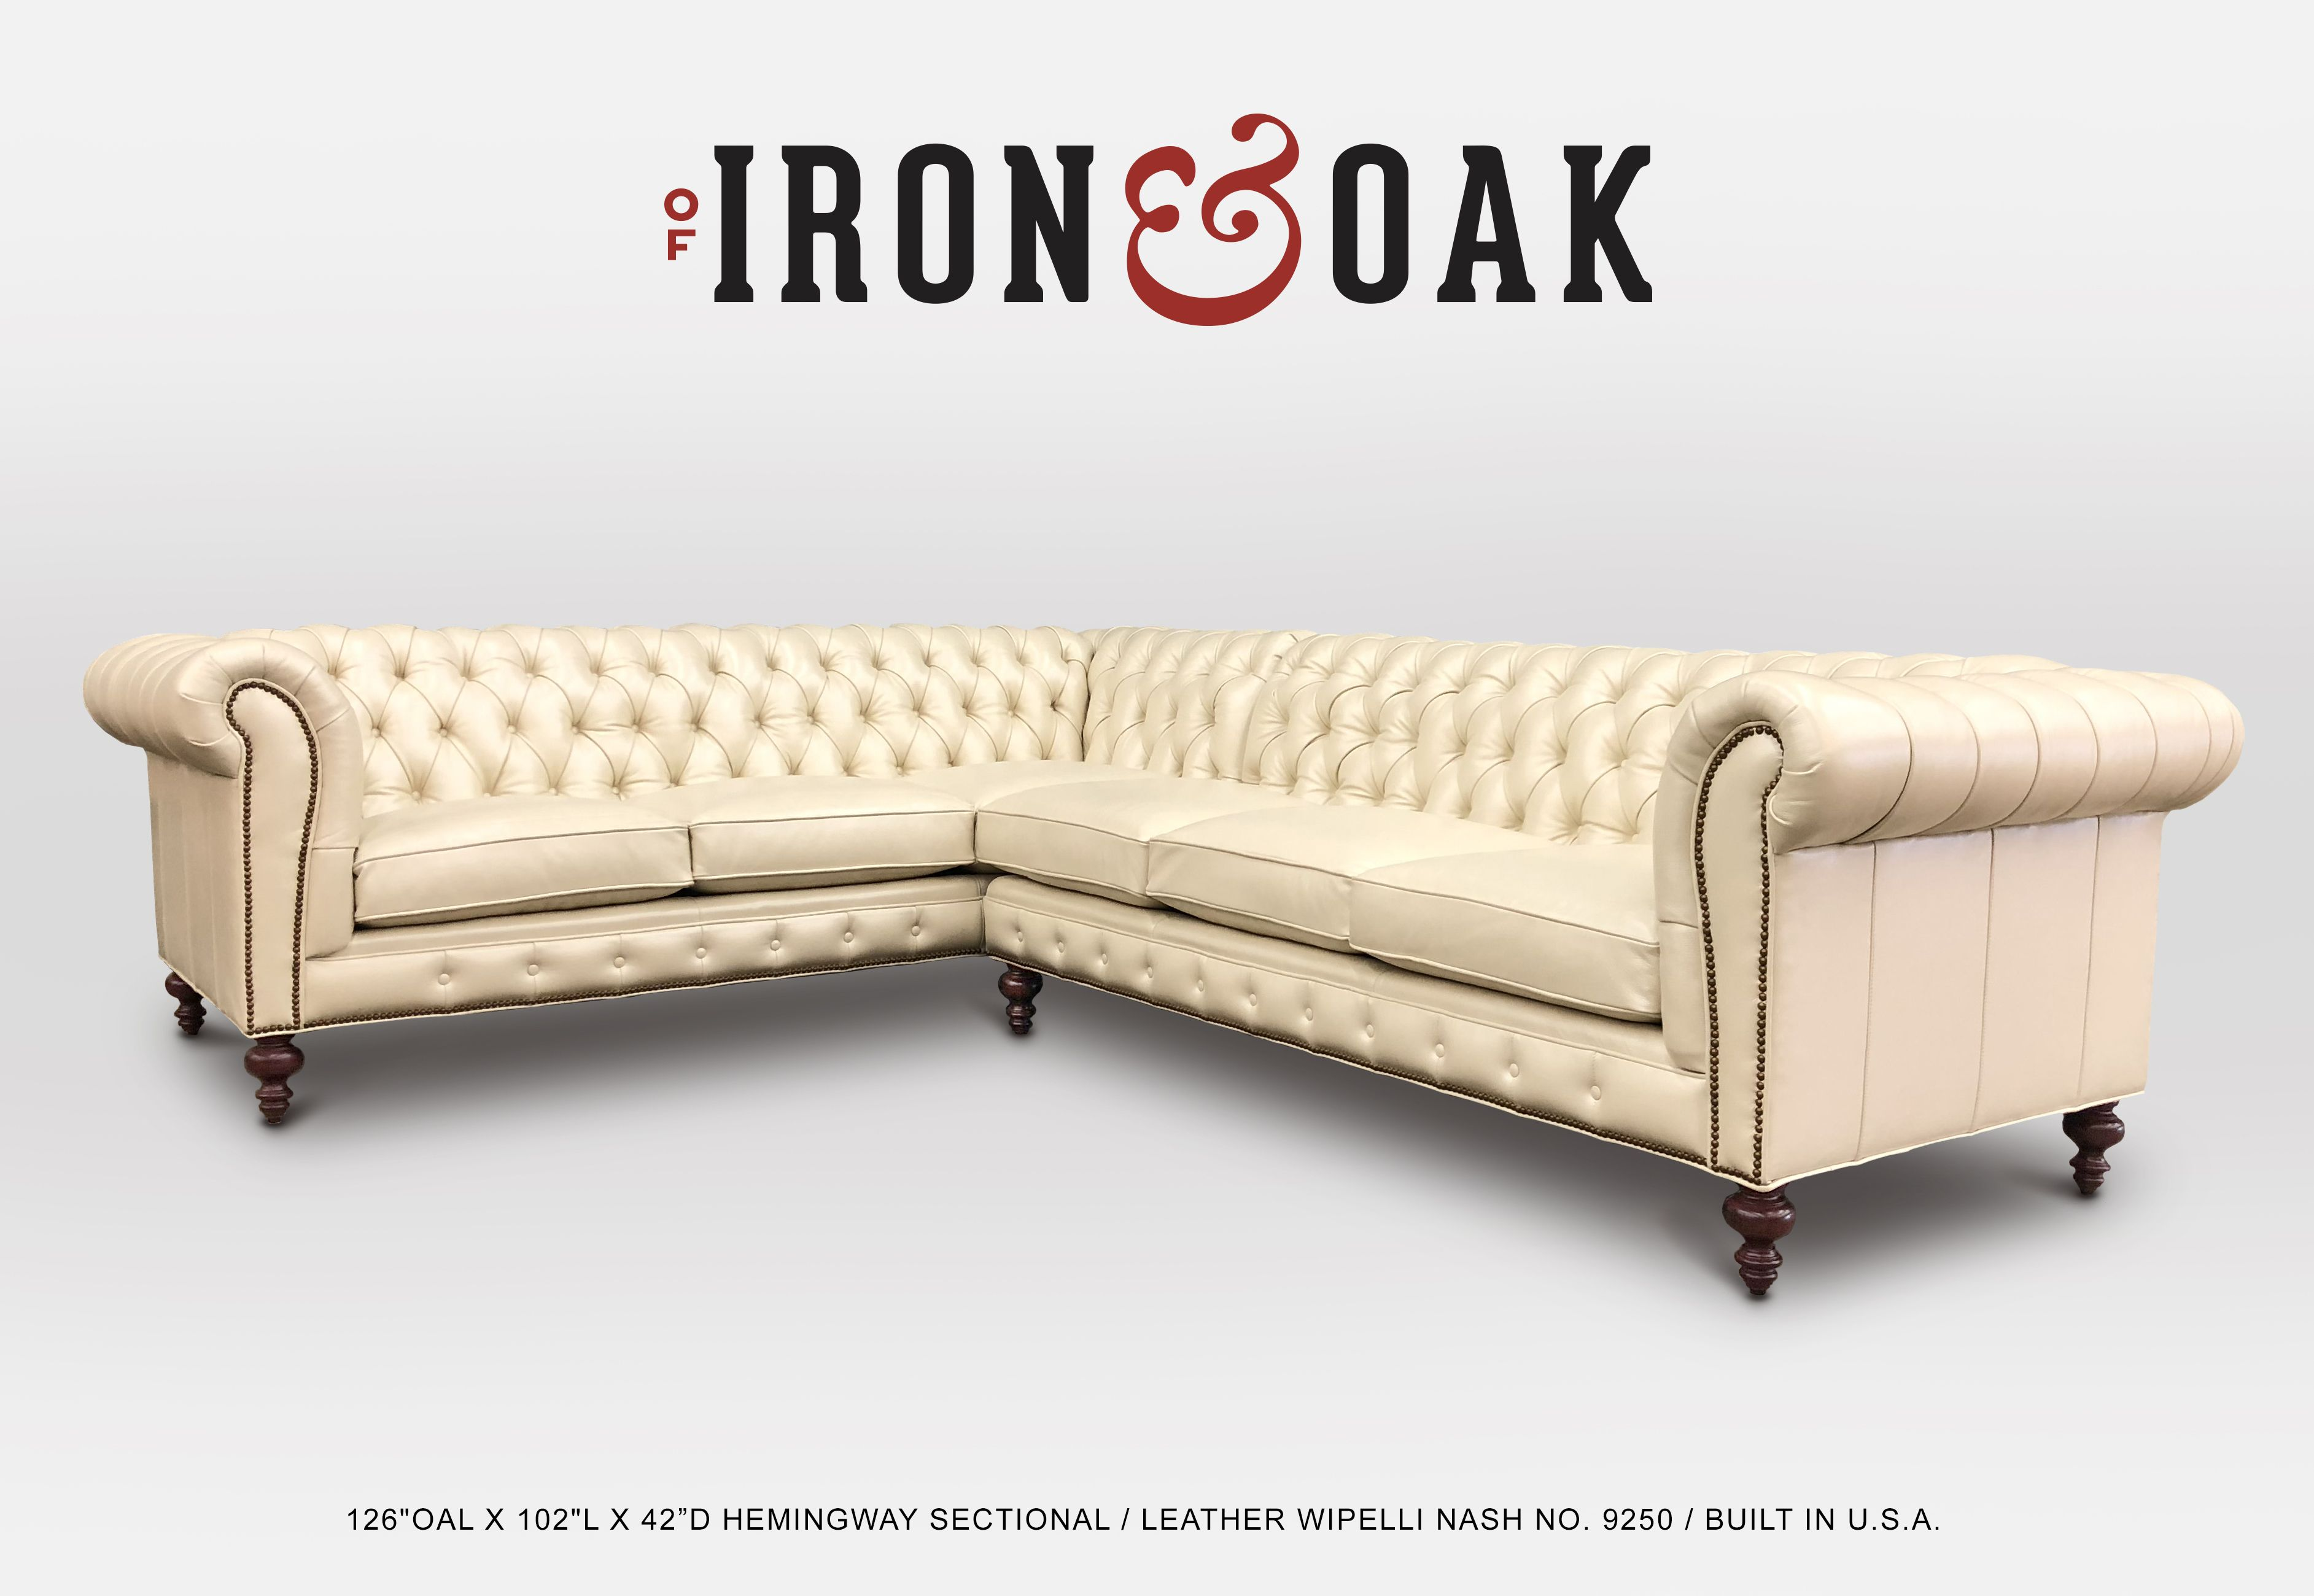 Chesterfield Collection Of Iron Oak Chesterfield Leather Chesterfield Custom Chesterfield Sofa